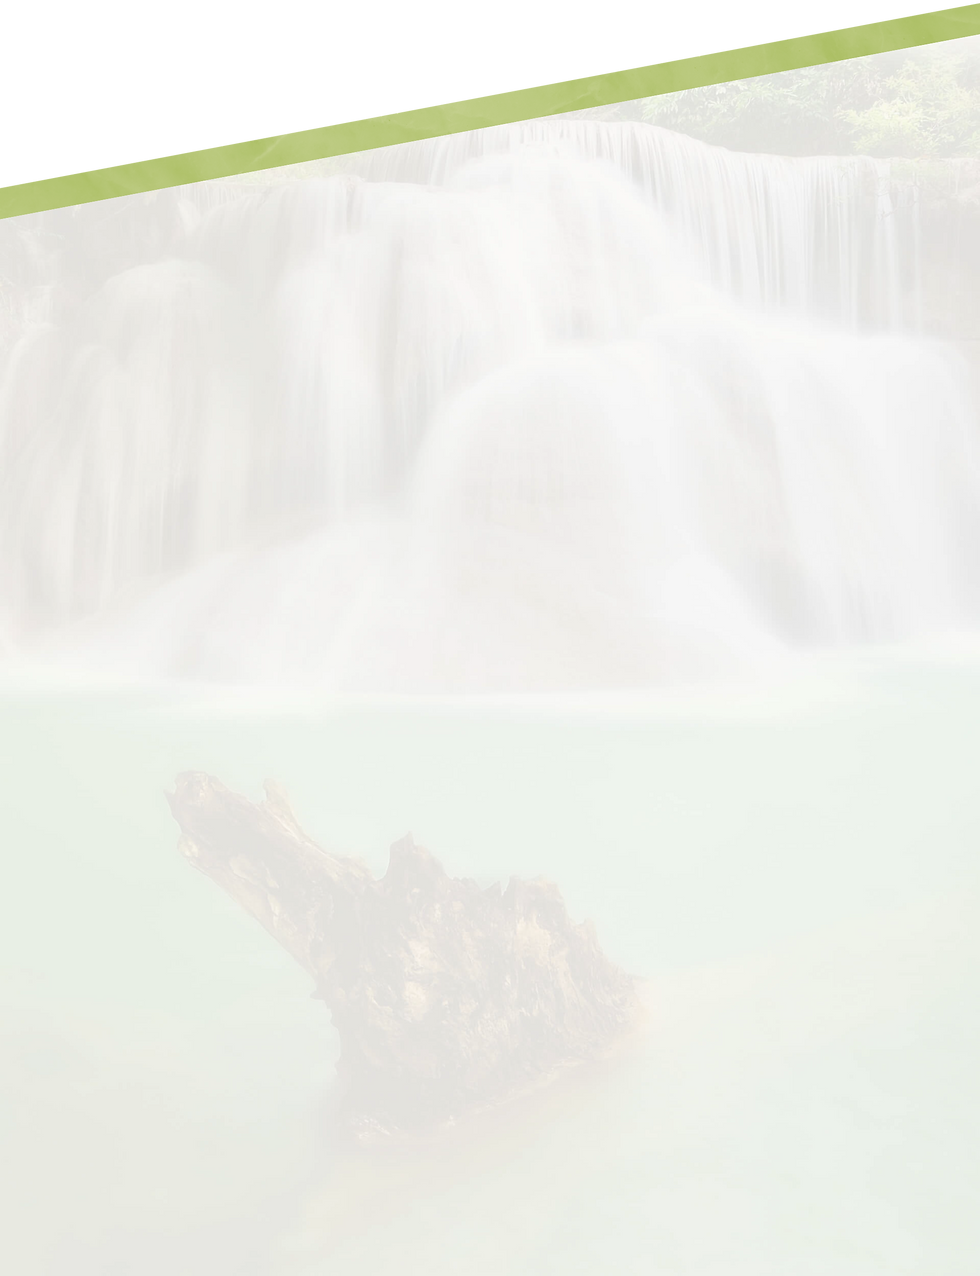 Waterfall-Straight-Bkg-FadeOPPP.png